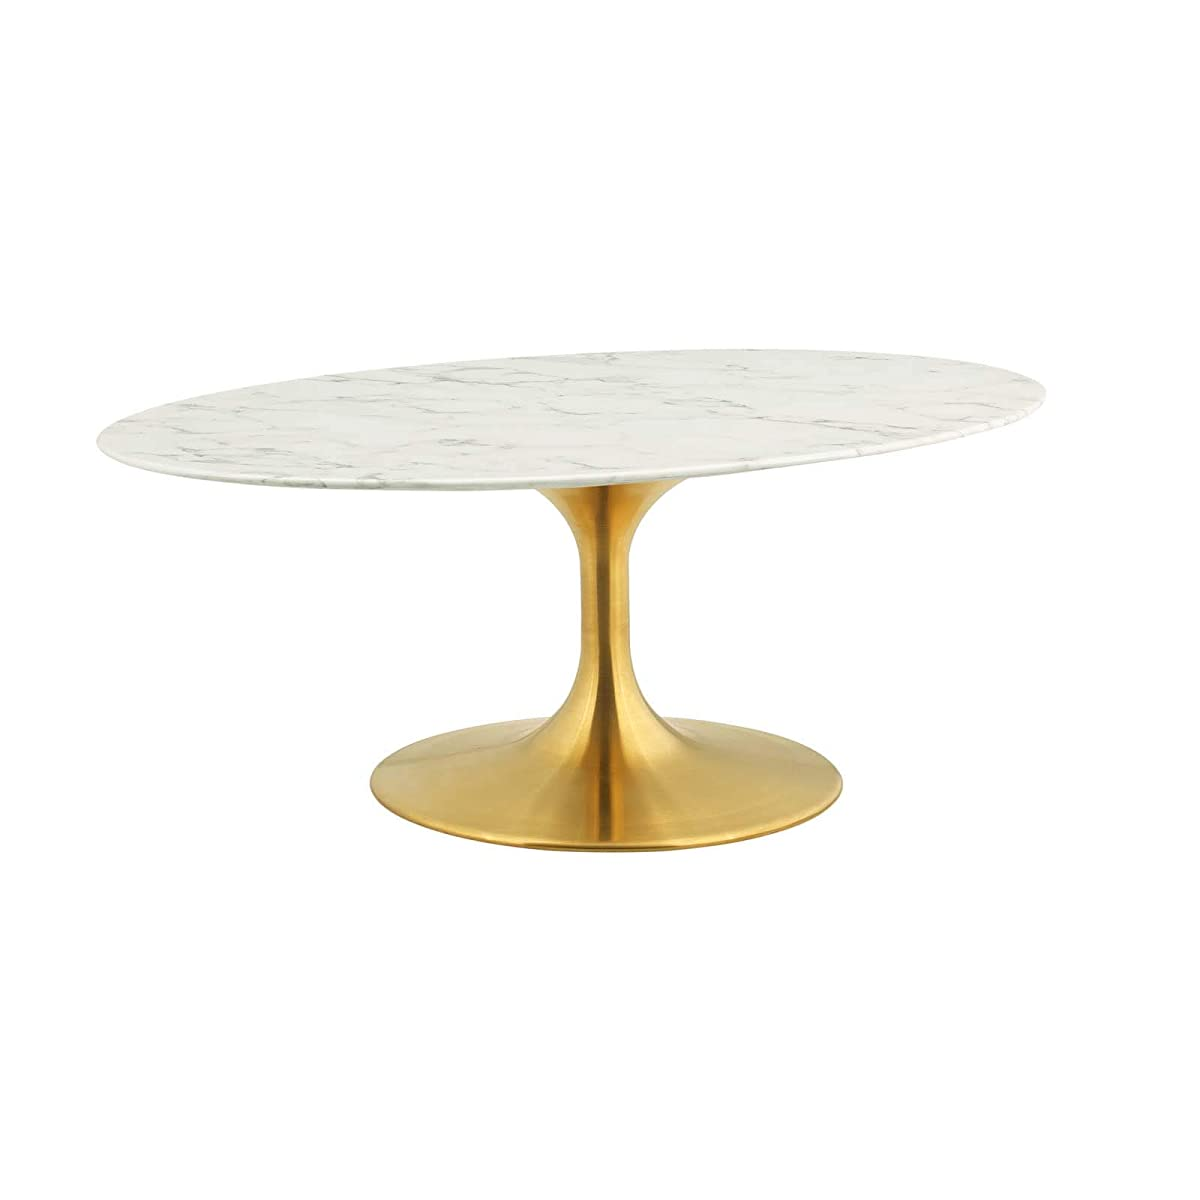 """Modway EEI-3249-GLD-WHI Lippa 42"""" Oval-Shaped Coffee Table Gold White"""